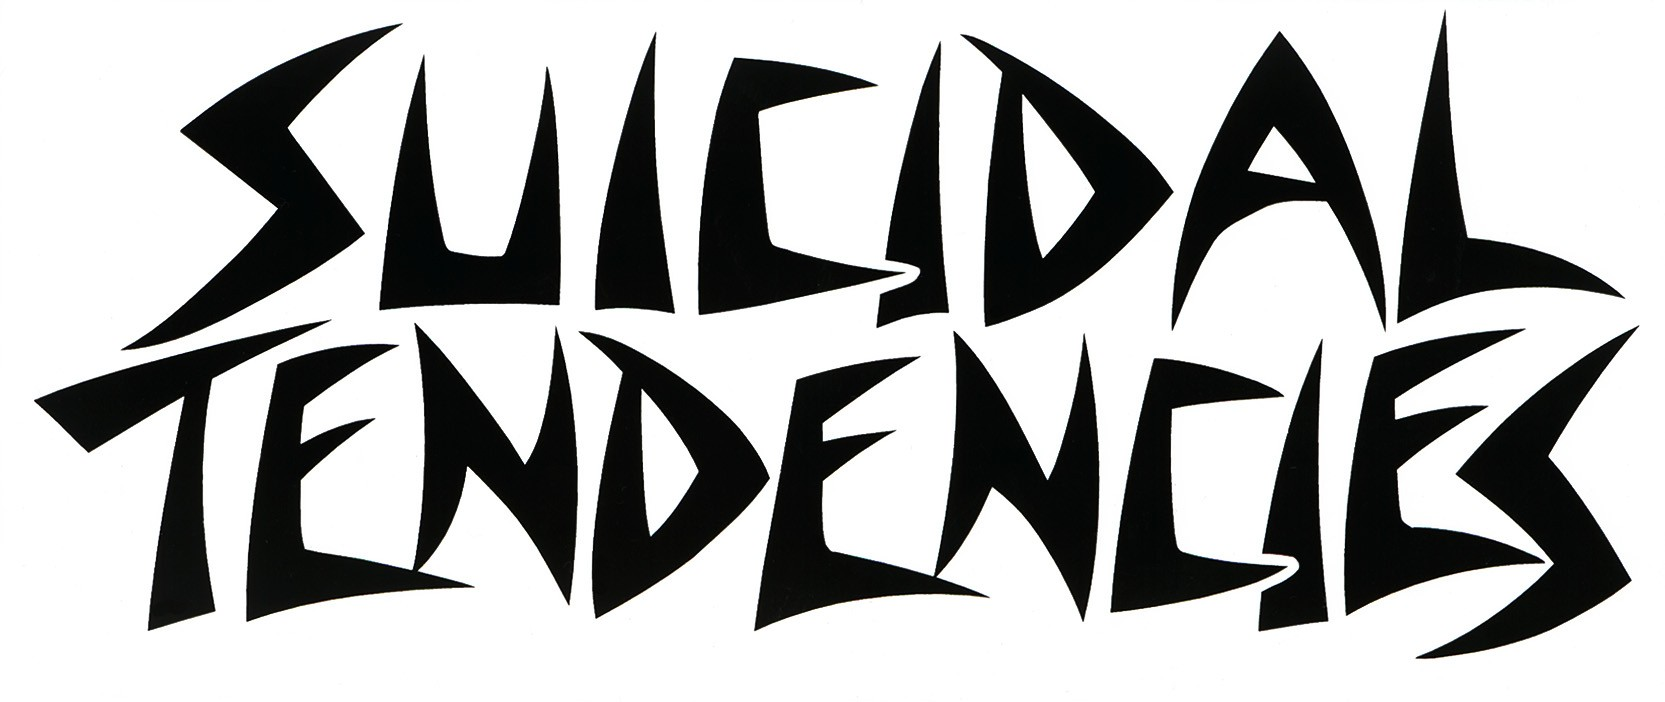 Suicidal-Tendencies-Logo-Vinyl-Decal-Sticker__01237.1507851596